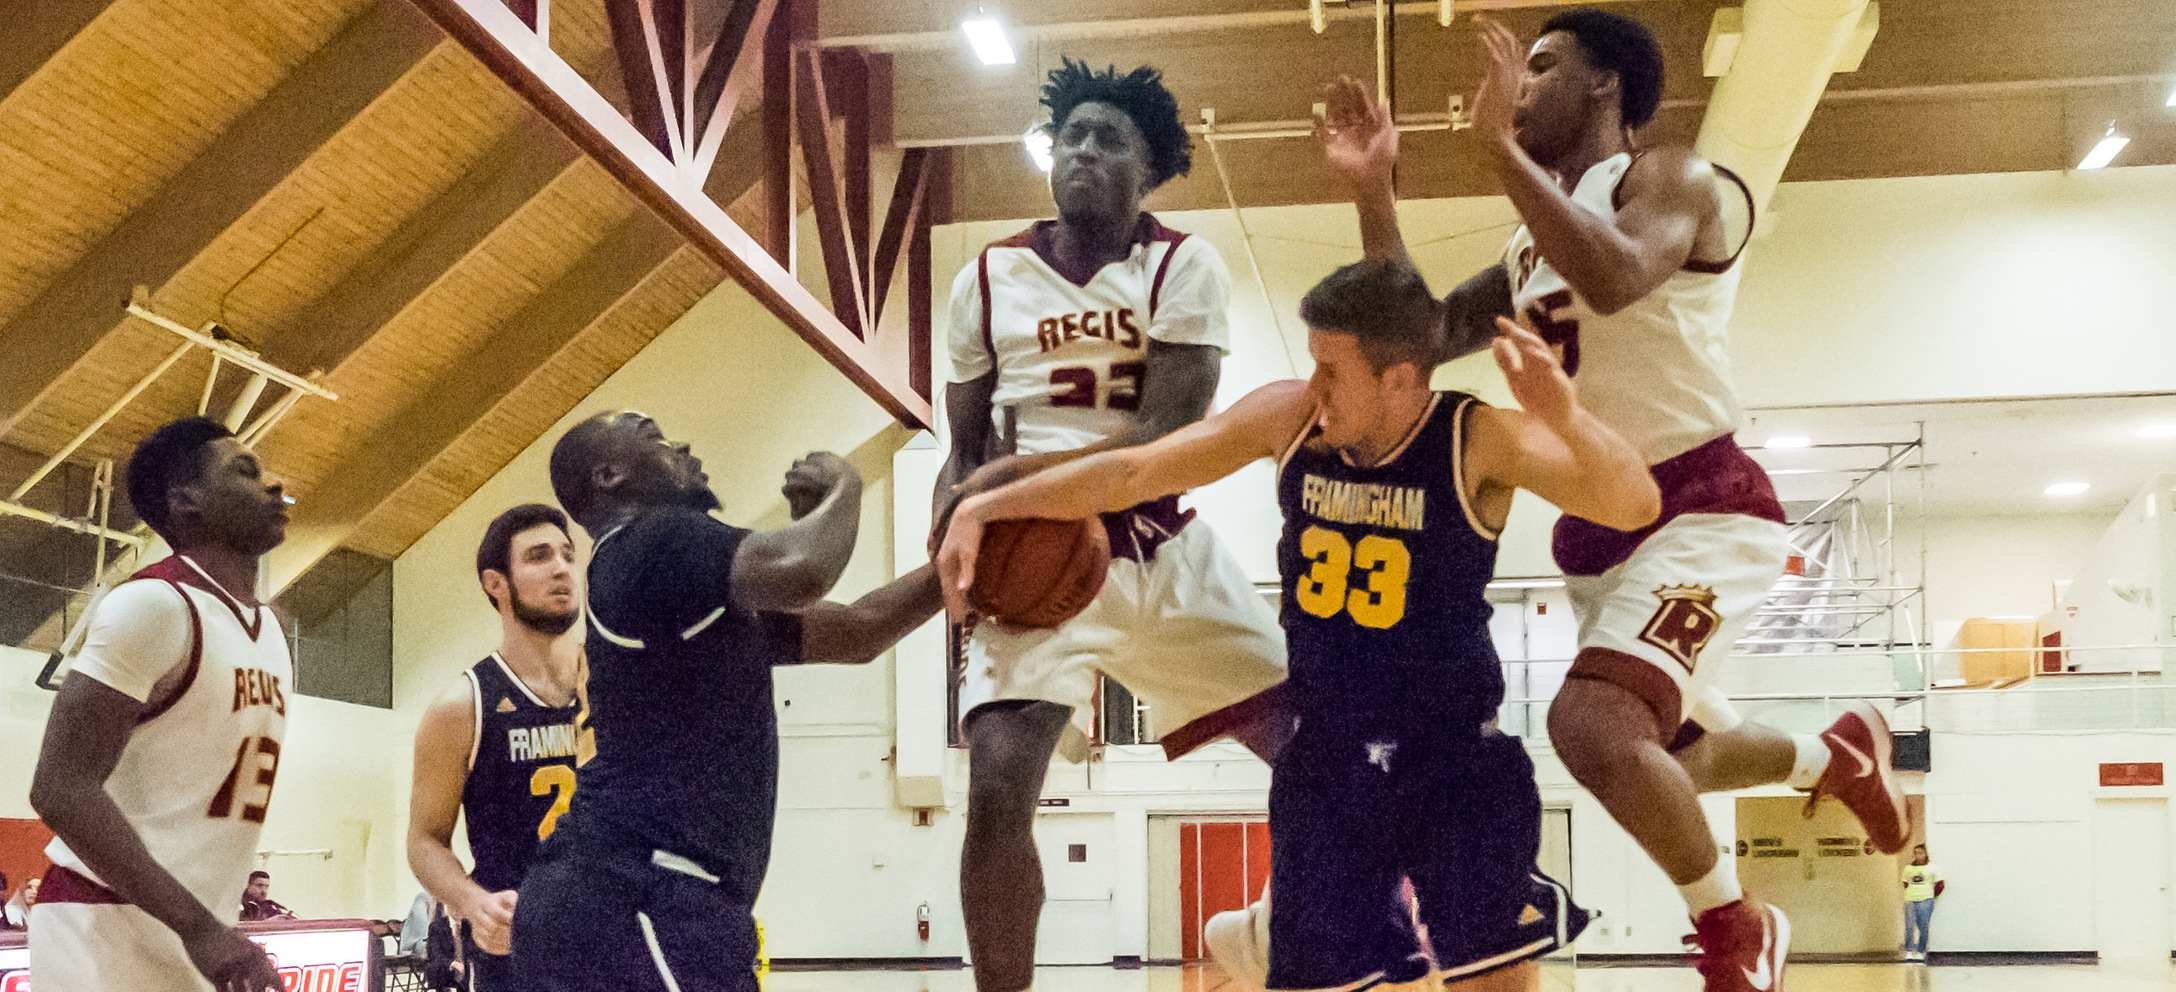 Men's Basketball Closes Season With Loss To Lasell In GNAC Quarterfinal